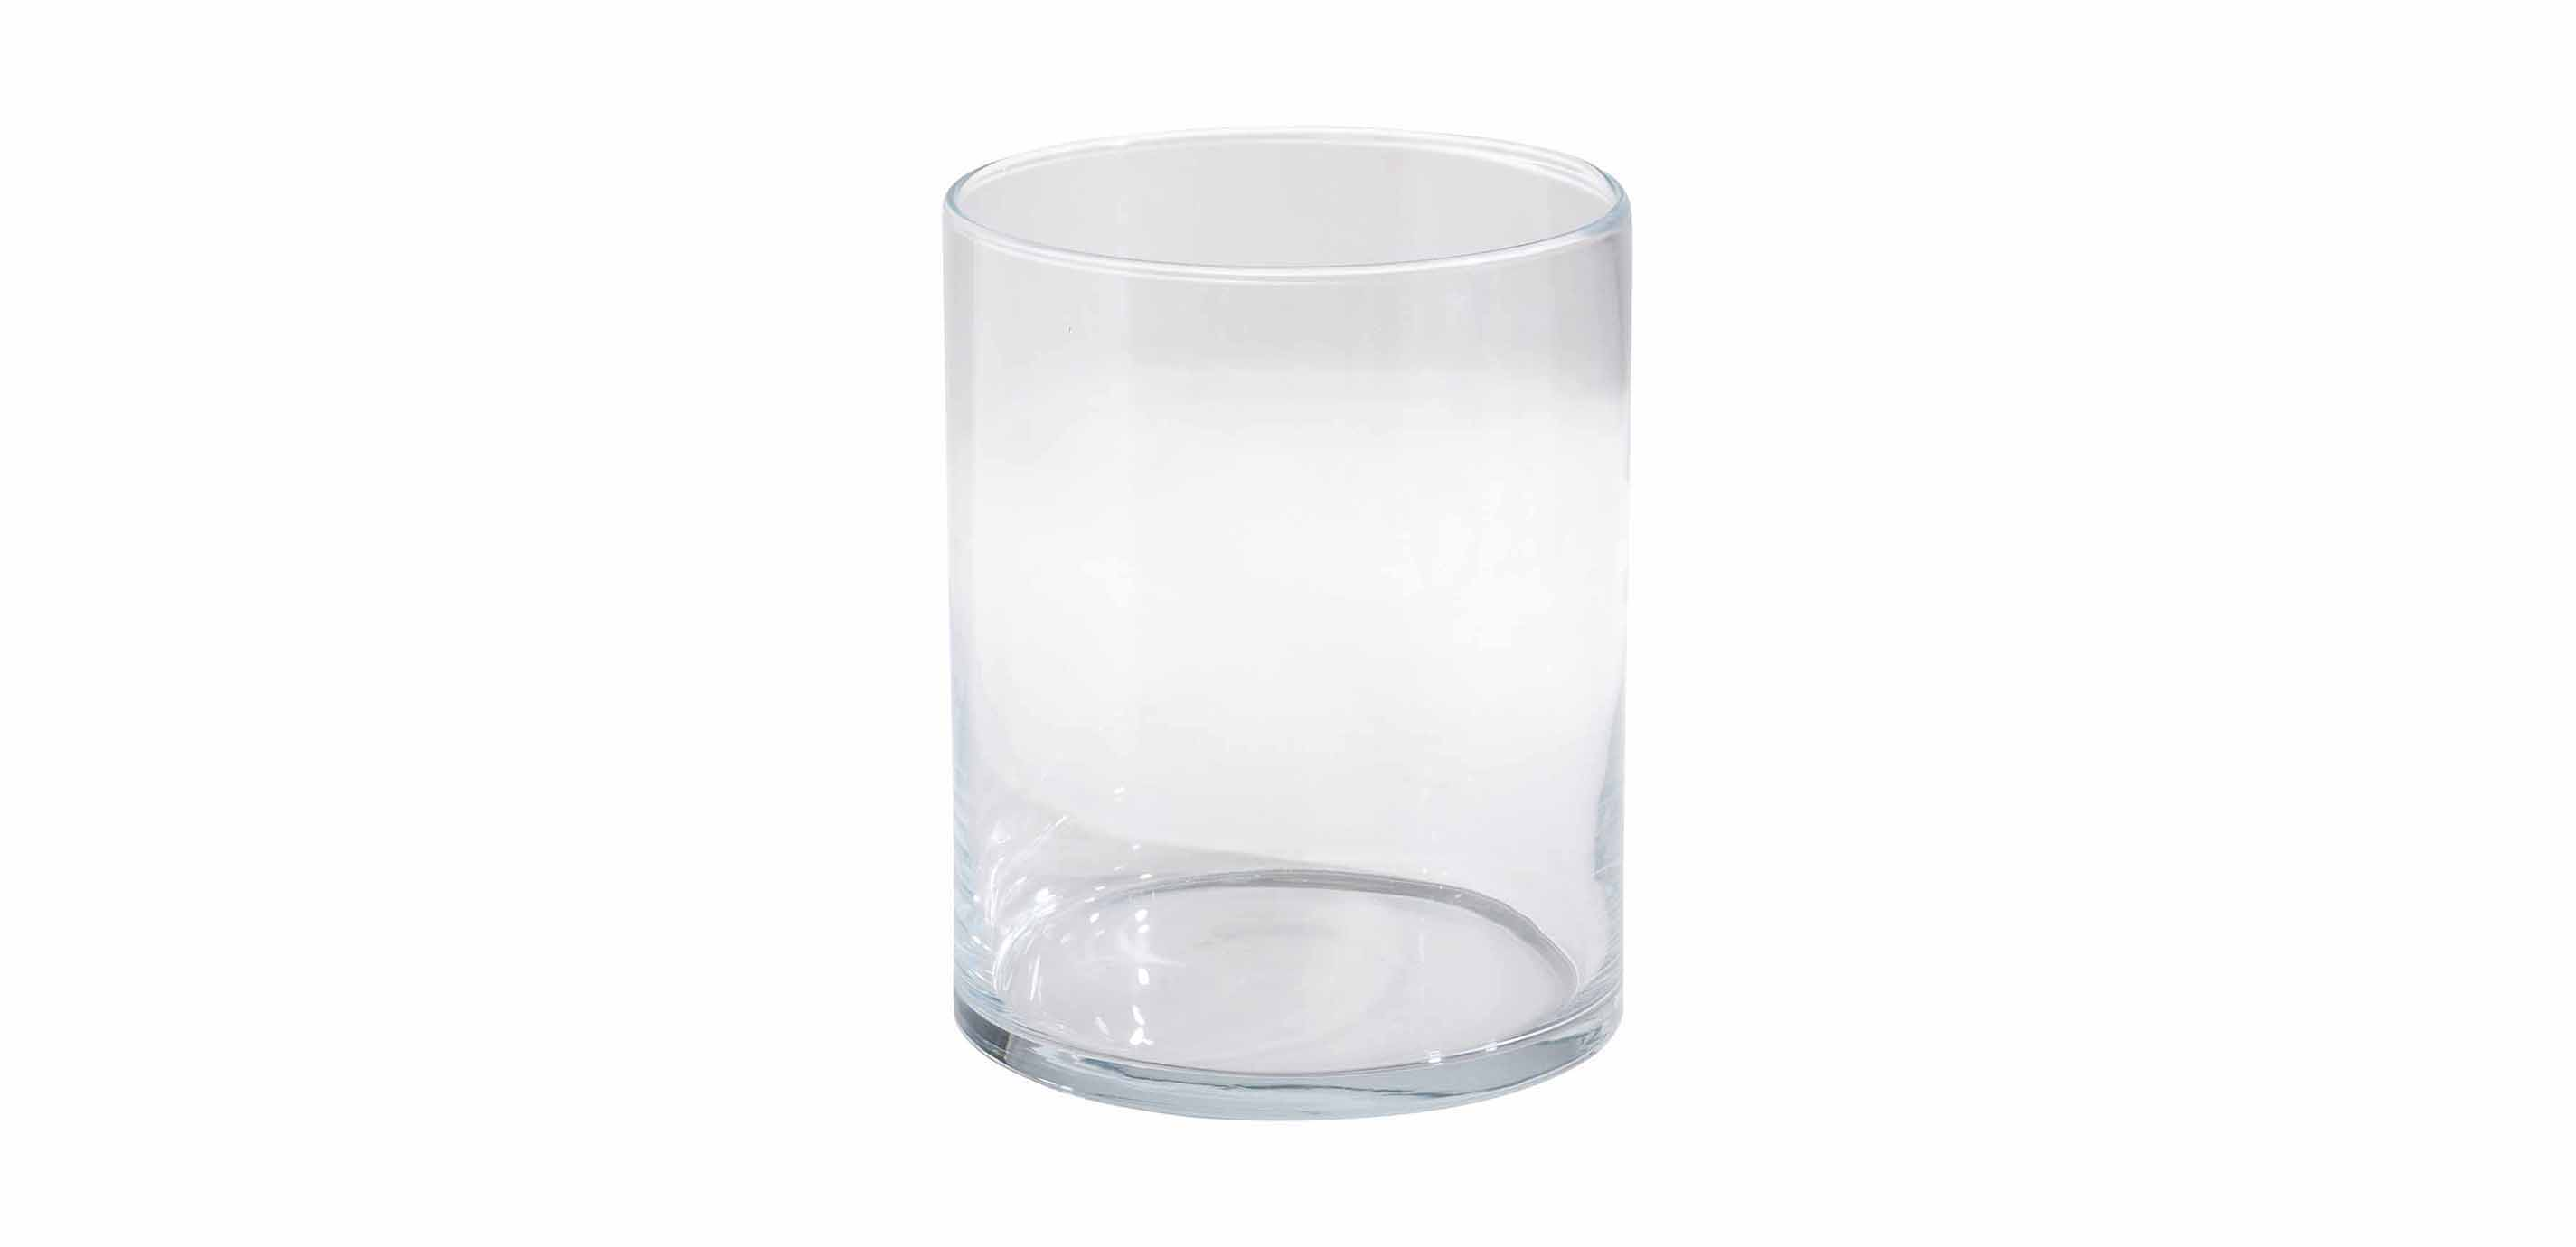 Hurricane Glas Glass Hurricanes Candle Holders Ethan Allen